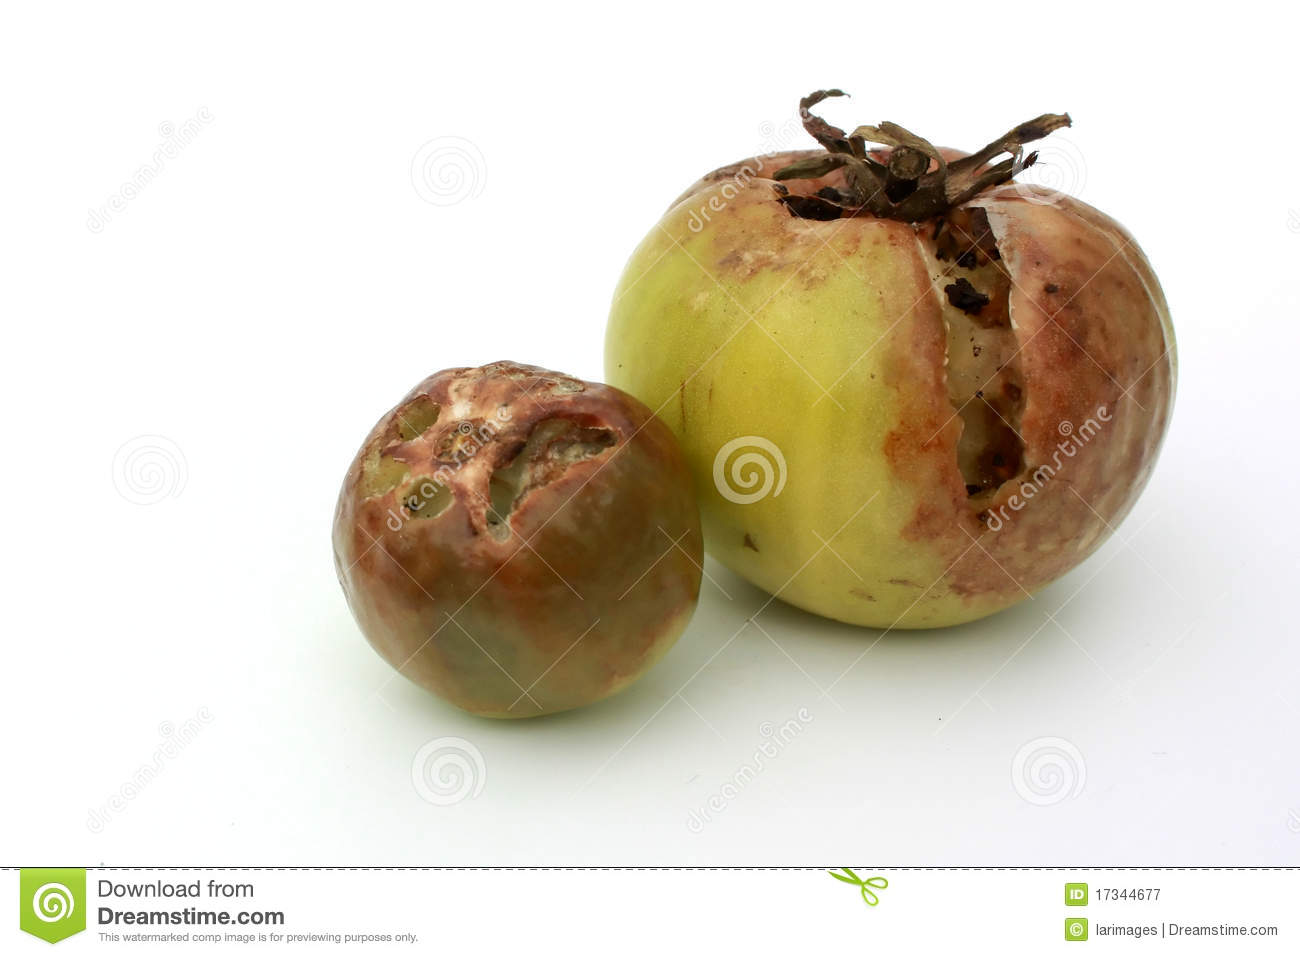 Rotten tomatoes stock image image of brown food single 17344677 download rotten tomatoes stock image image of brown food single 17344677 ccuart Choice Image